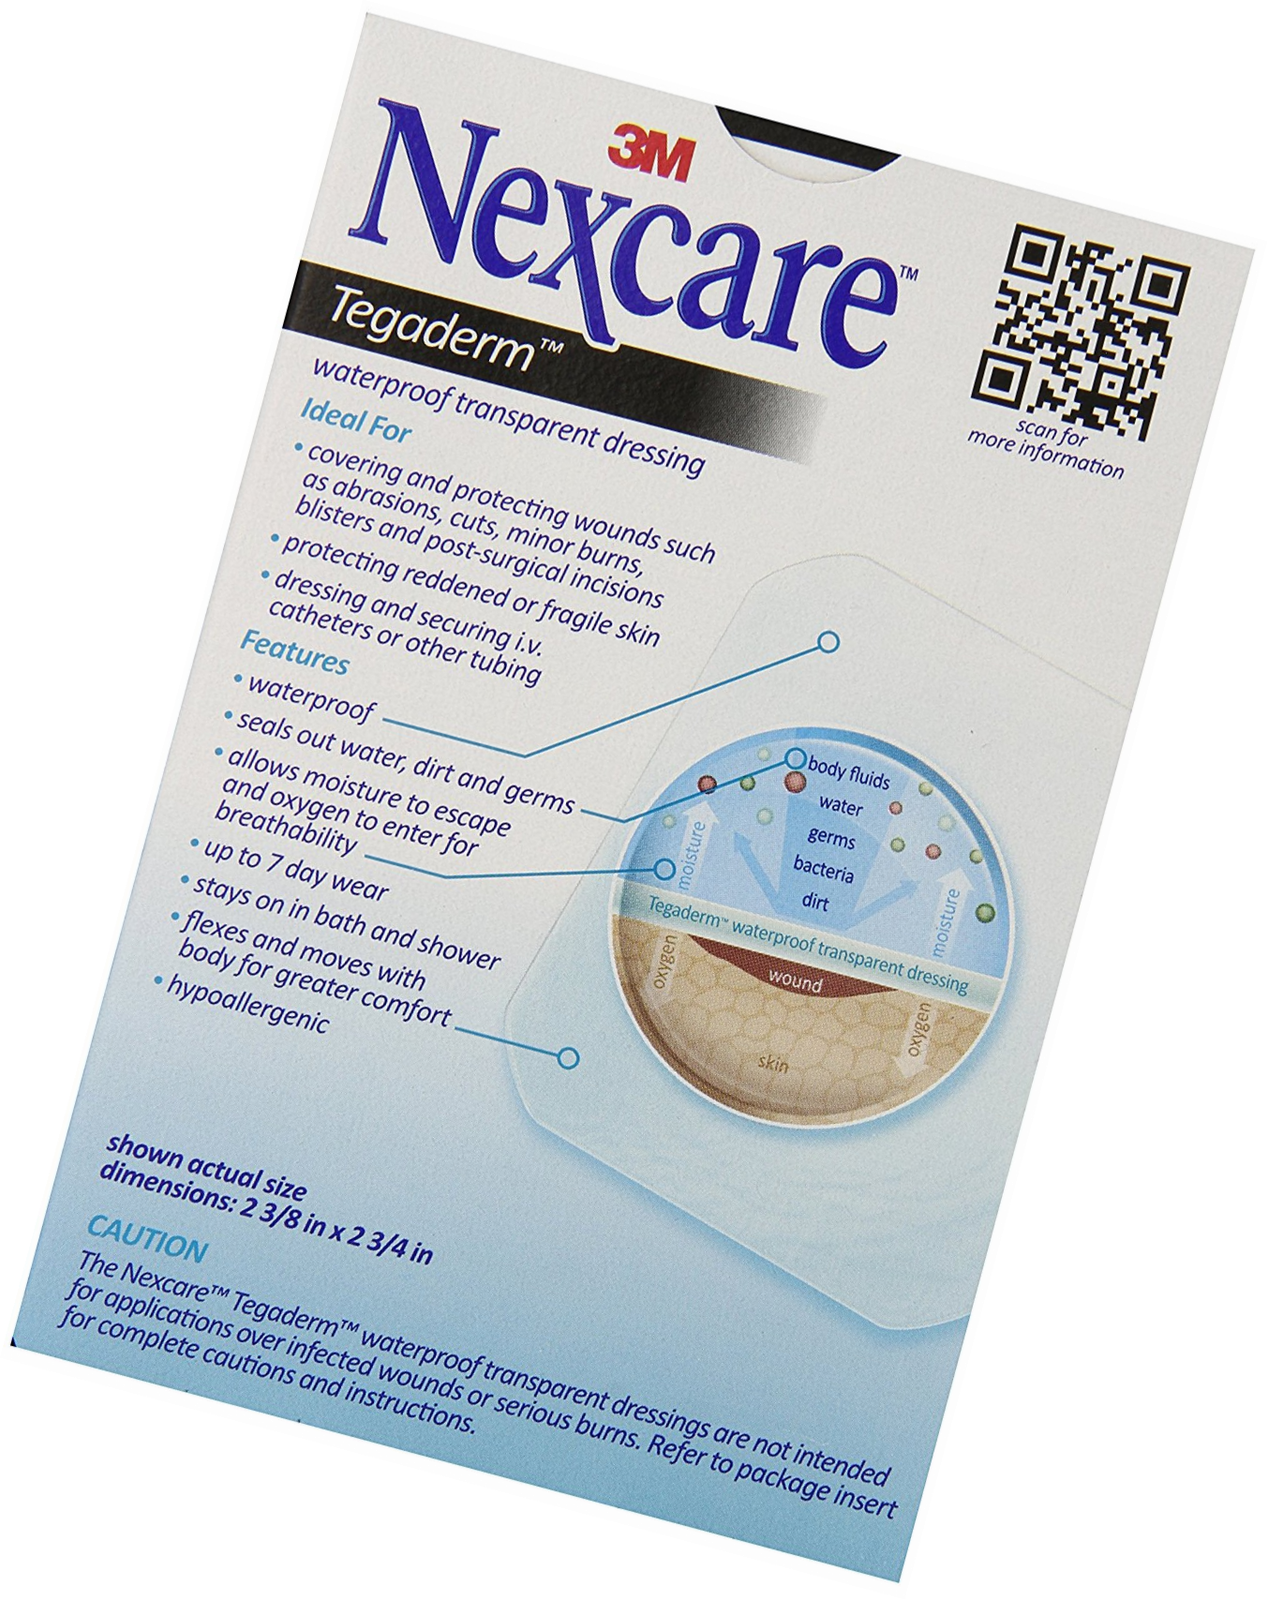 3m Nexcare Tegaderm Waterproof Transparent And Similar Items